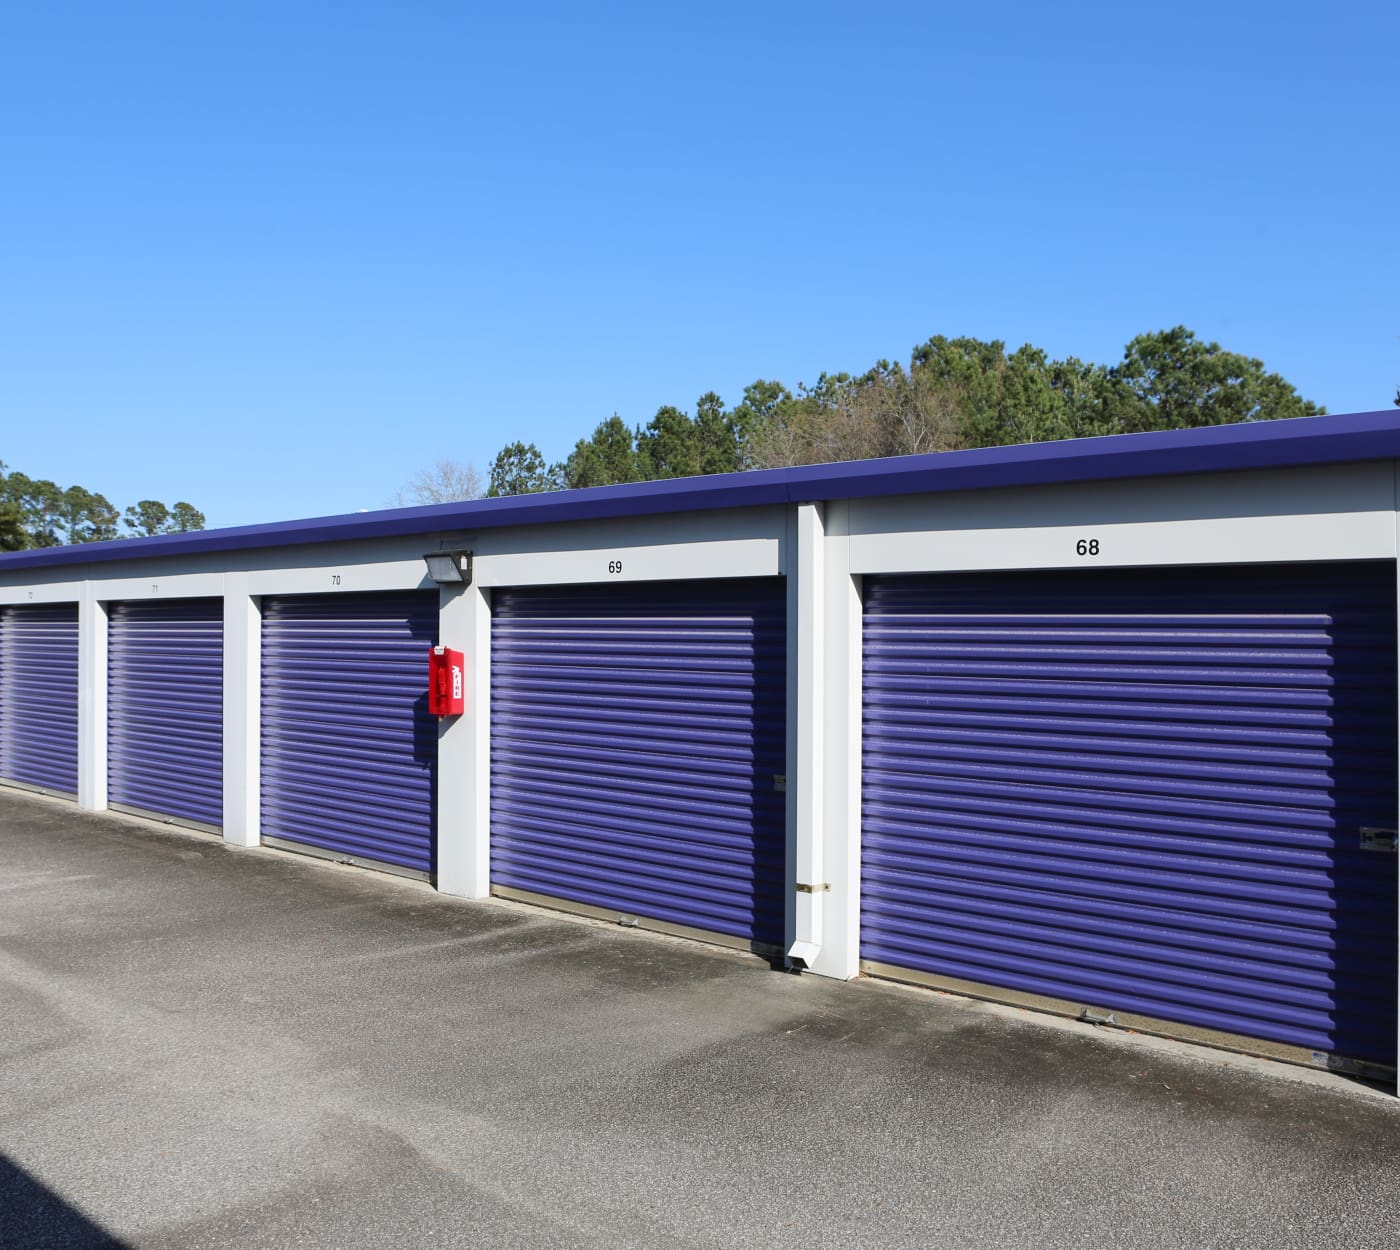 Ground-floor units at StoreSmart Self-Storage in Wando, South Carolina